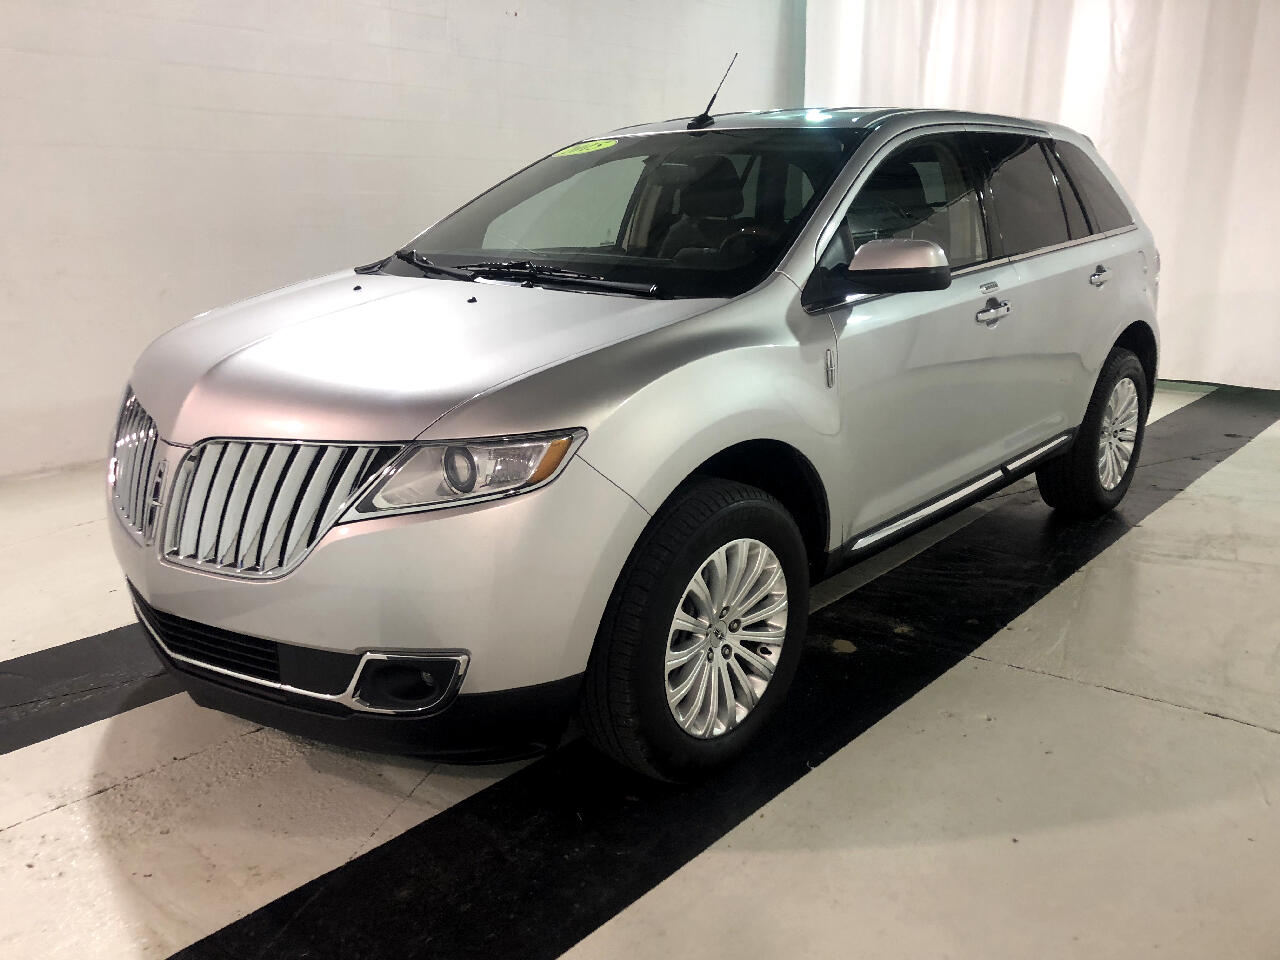 Used Cars For Sale Elizabethtown Ky 42701 Pinkham Lincoln Automotive 2007 Mkx Fuel Filter 2014 Awd 4dr